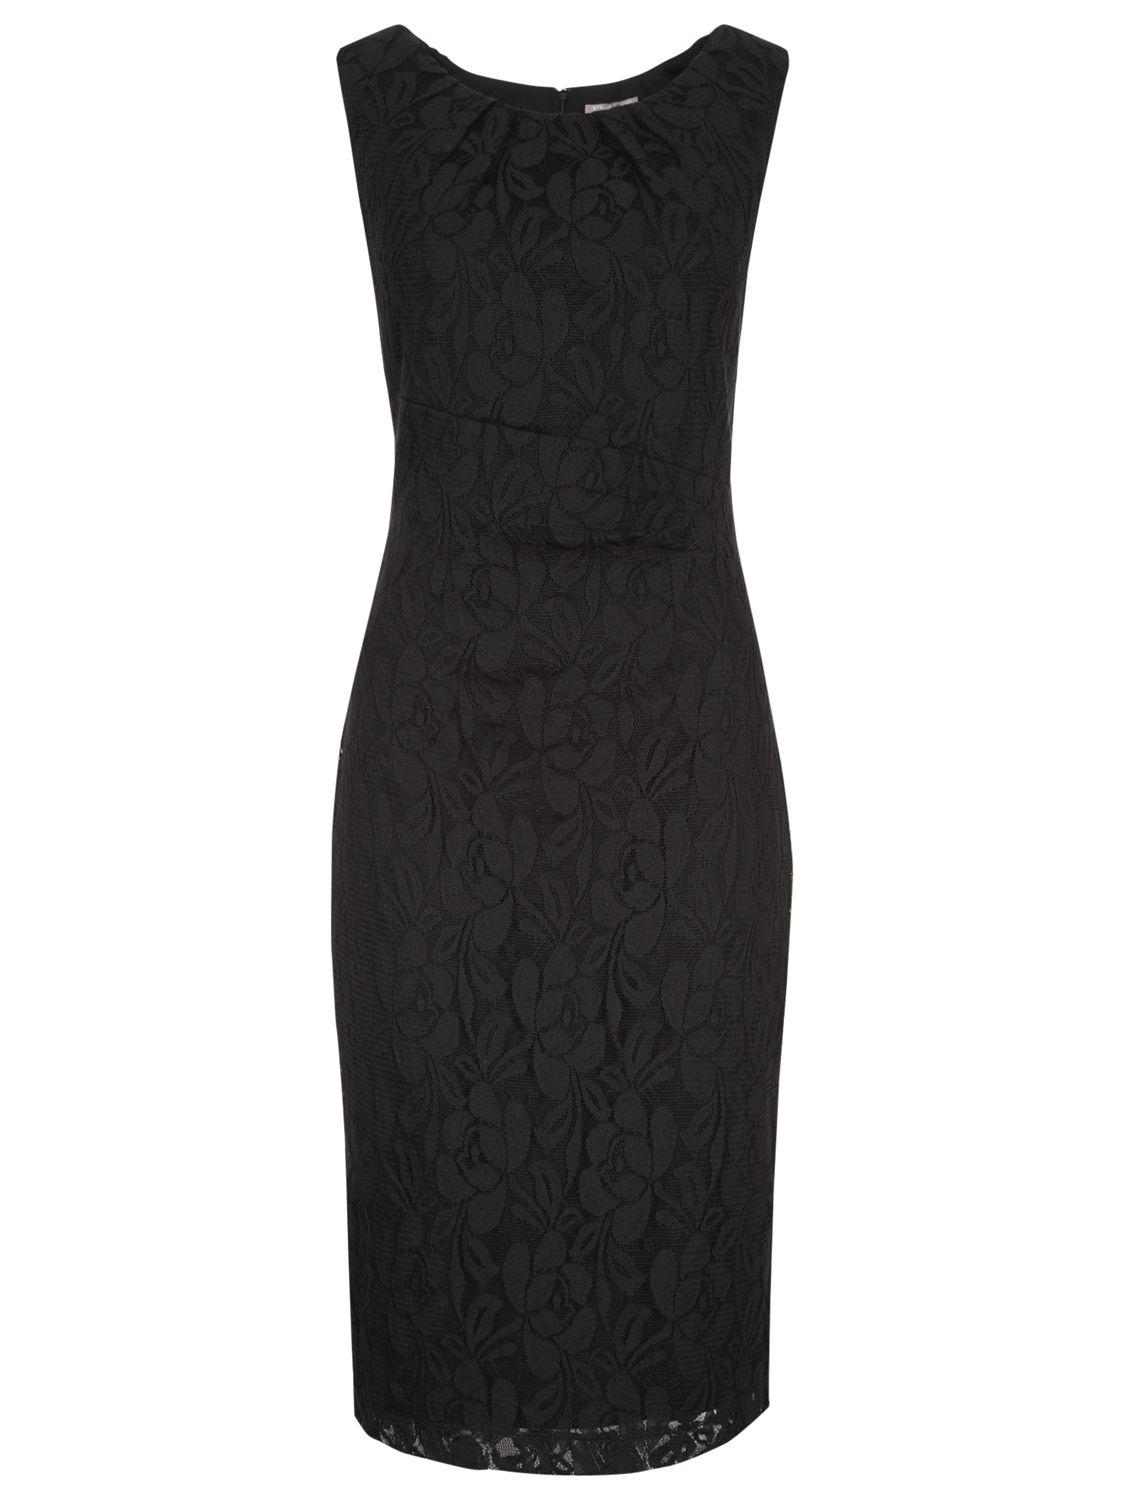 planet lace shift dress black, planet, lace, shift, dress, black, clearance, womenswear offers, womens dresses offers, women, inactive womenswear, new reductions, womens dresses, special offers, edition magazine, workwear, 1613244